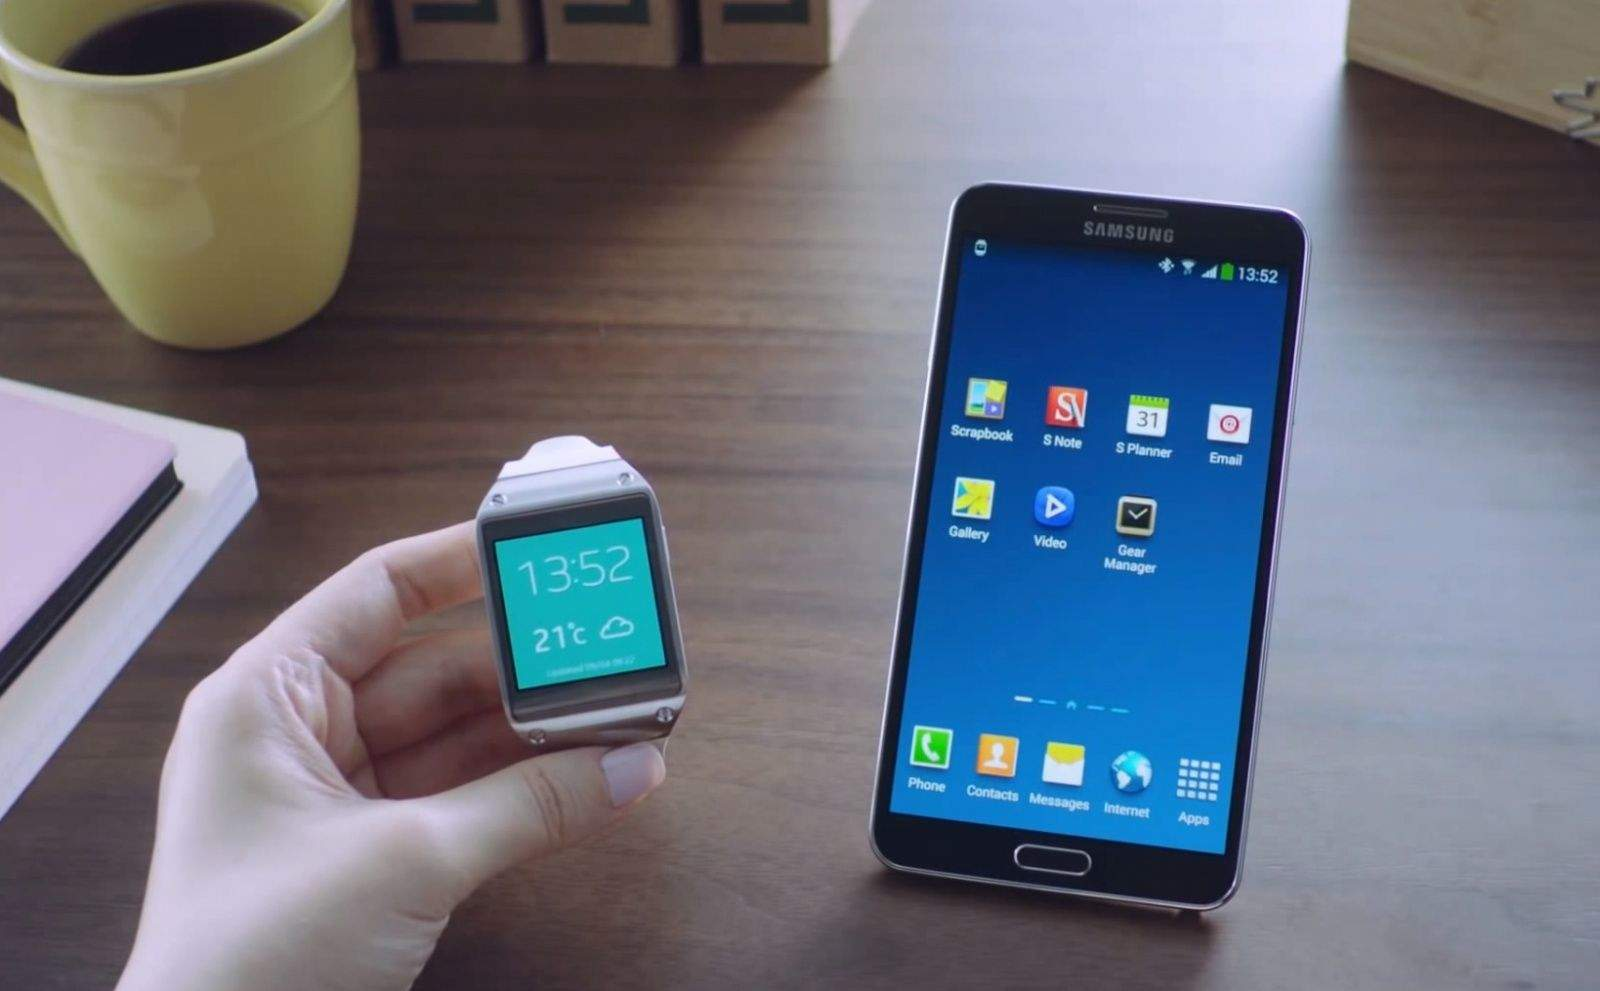 Cult of Android - Samsung Galaxy Note 3 & Galaxy Gear Will Be